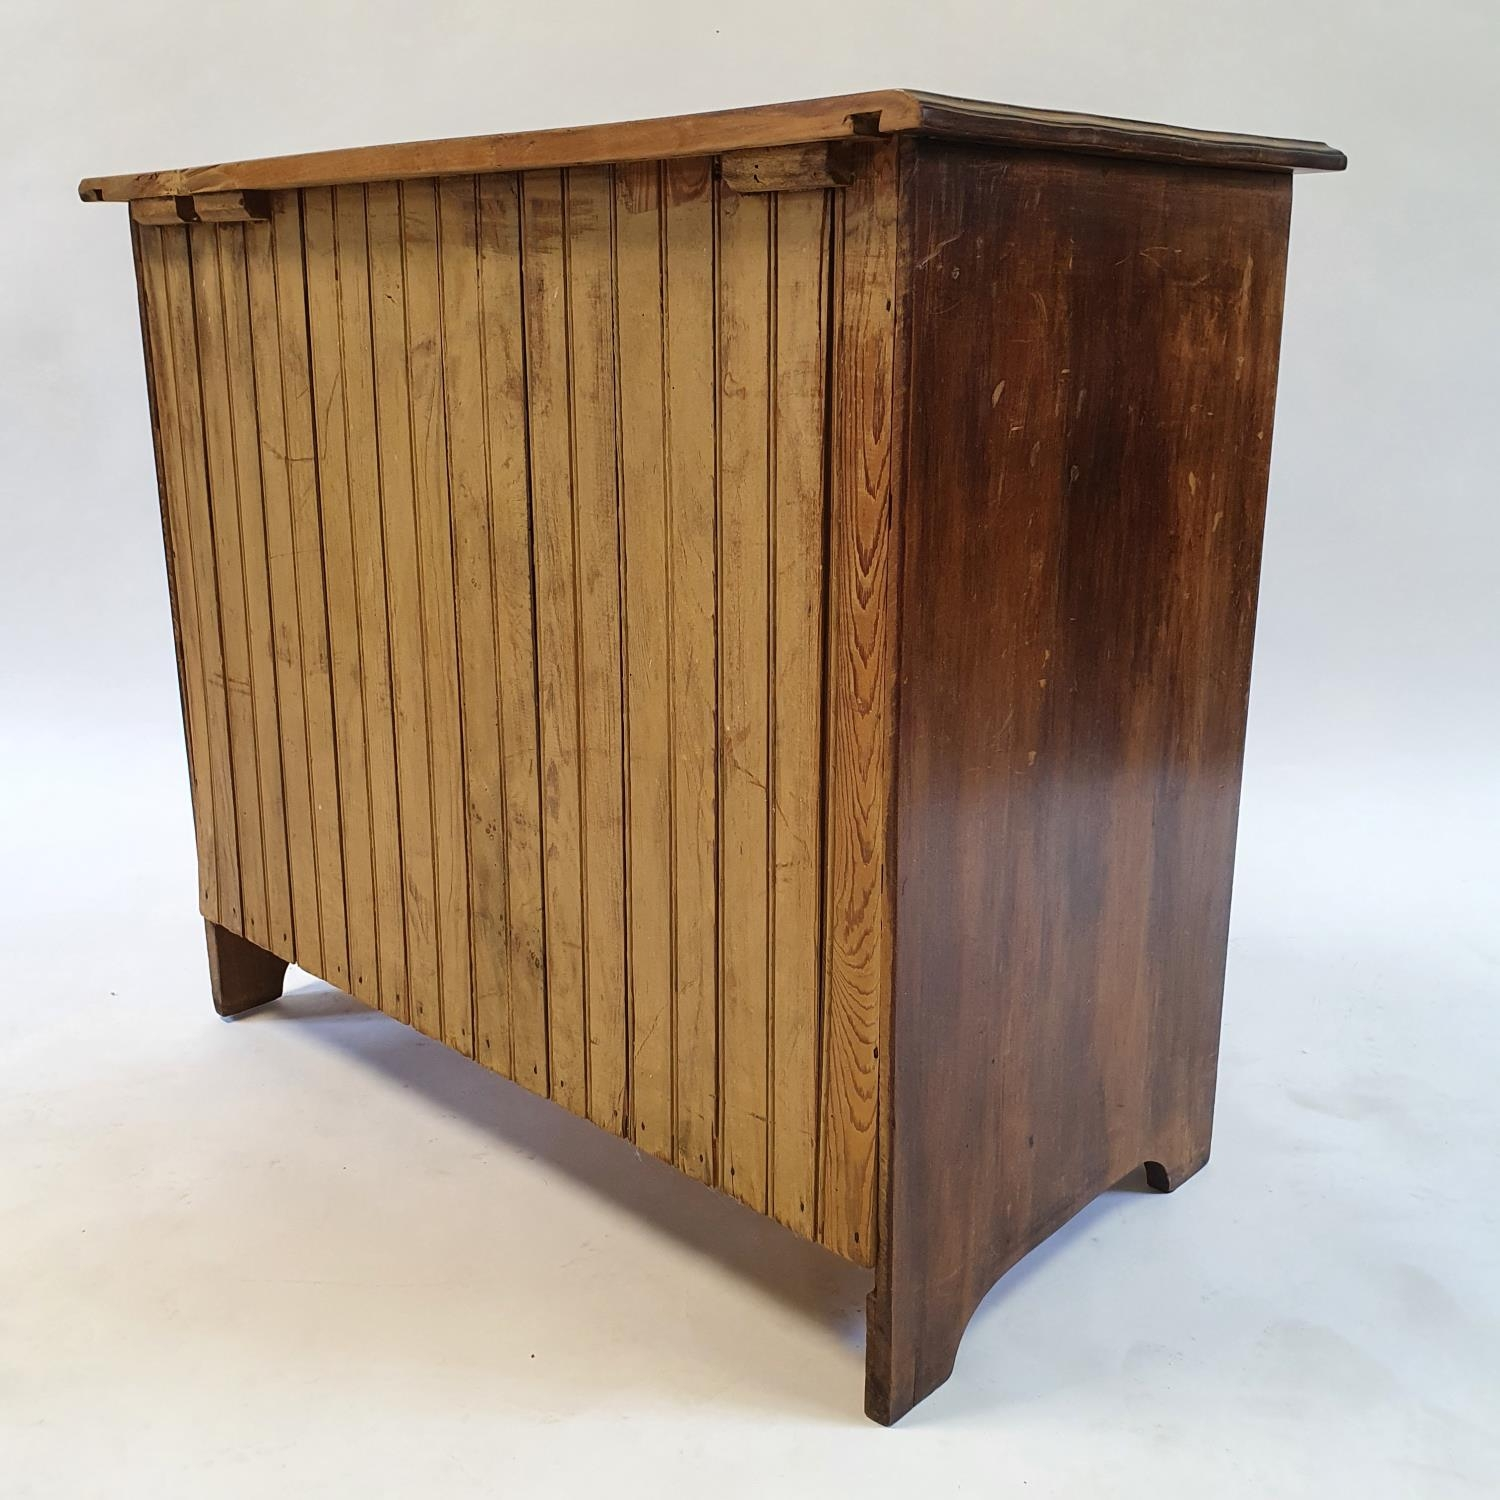 A mahogany chest, having three drawers, 92 cm wide - Image 3 of 3